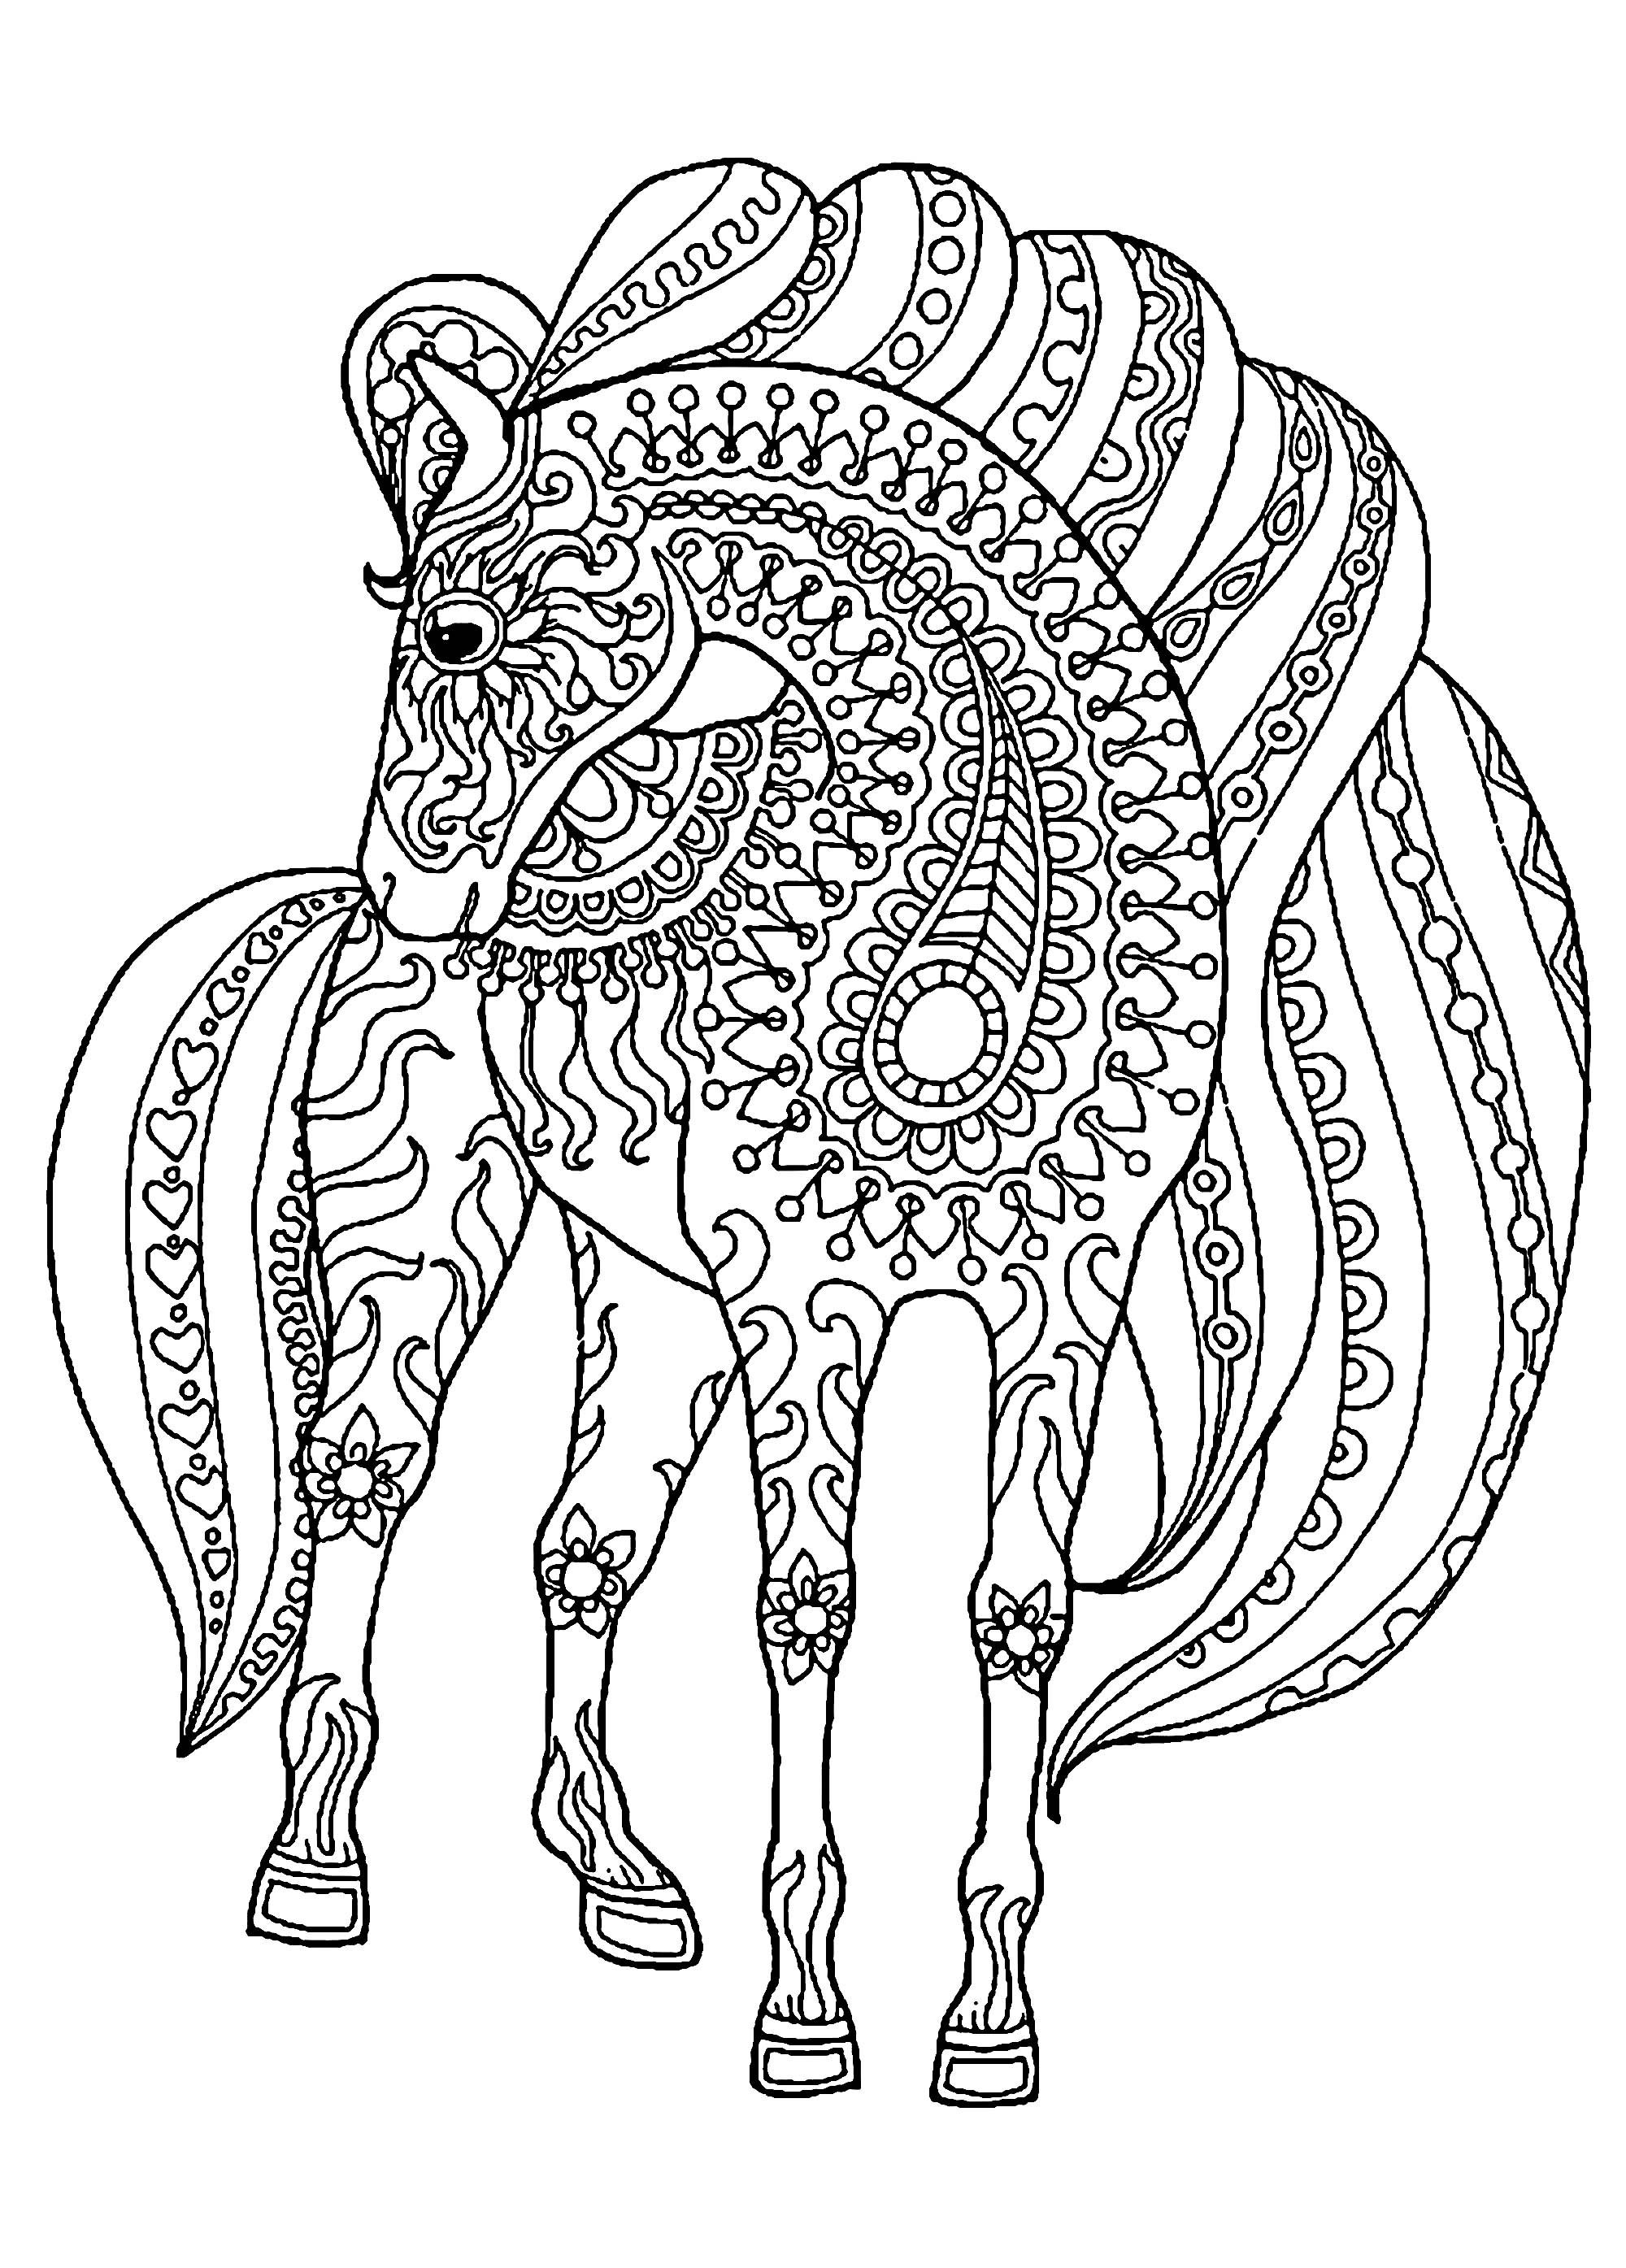 free printable coloring pages of horses horse coloring download horse coloring for free 2019 horses pages printable of free coloring